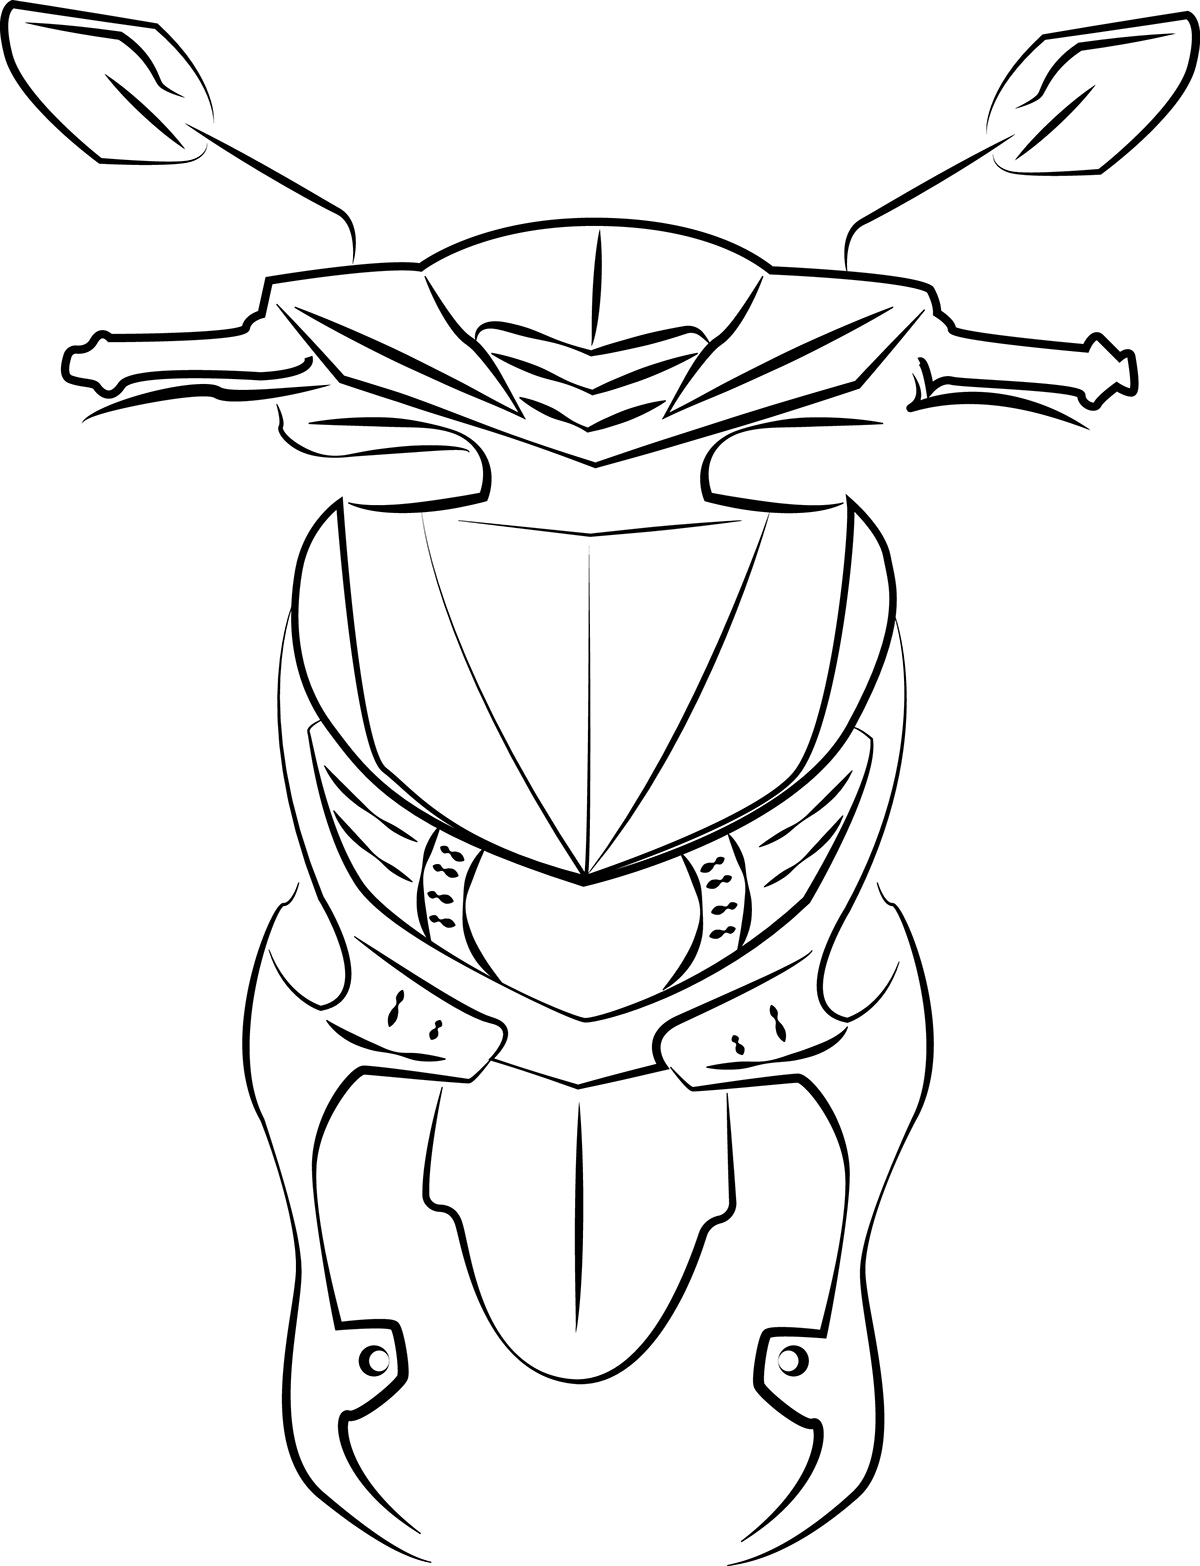 Tracing Motorcycle On Behance